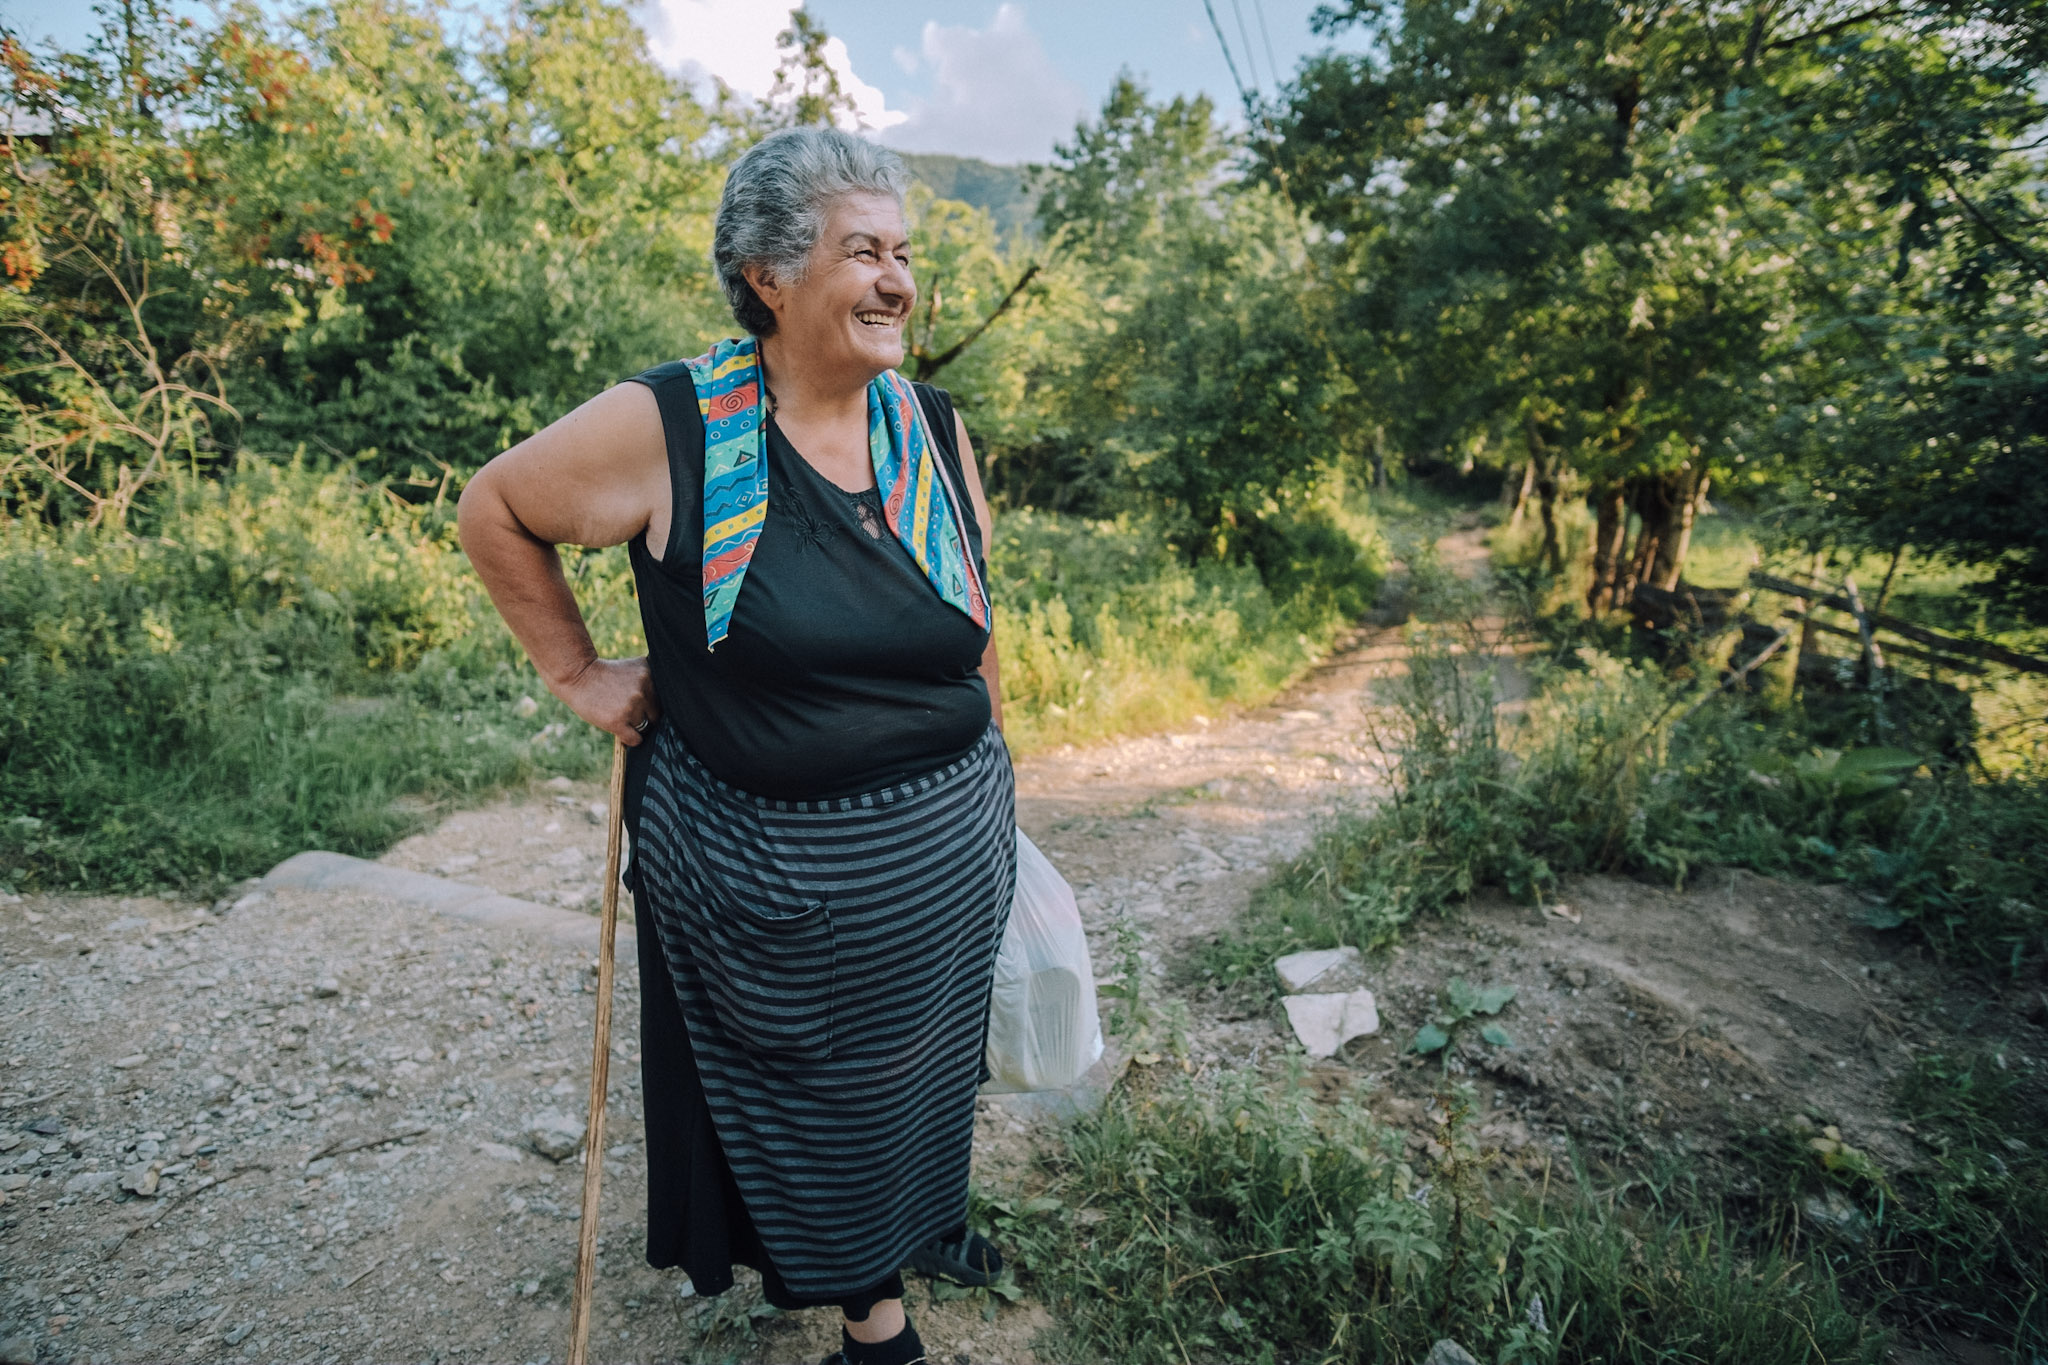 Dimitri Mais' snapshot of an older woman in Georgia, smiling, holding a plastic shopping bag and walking stick